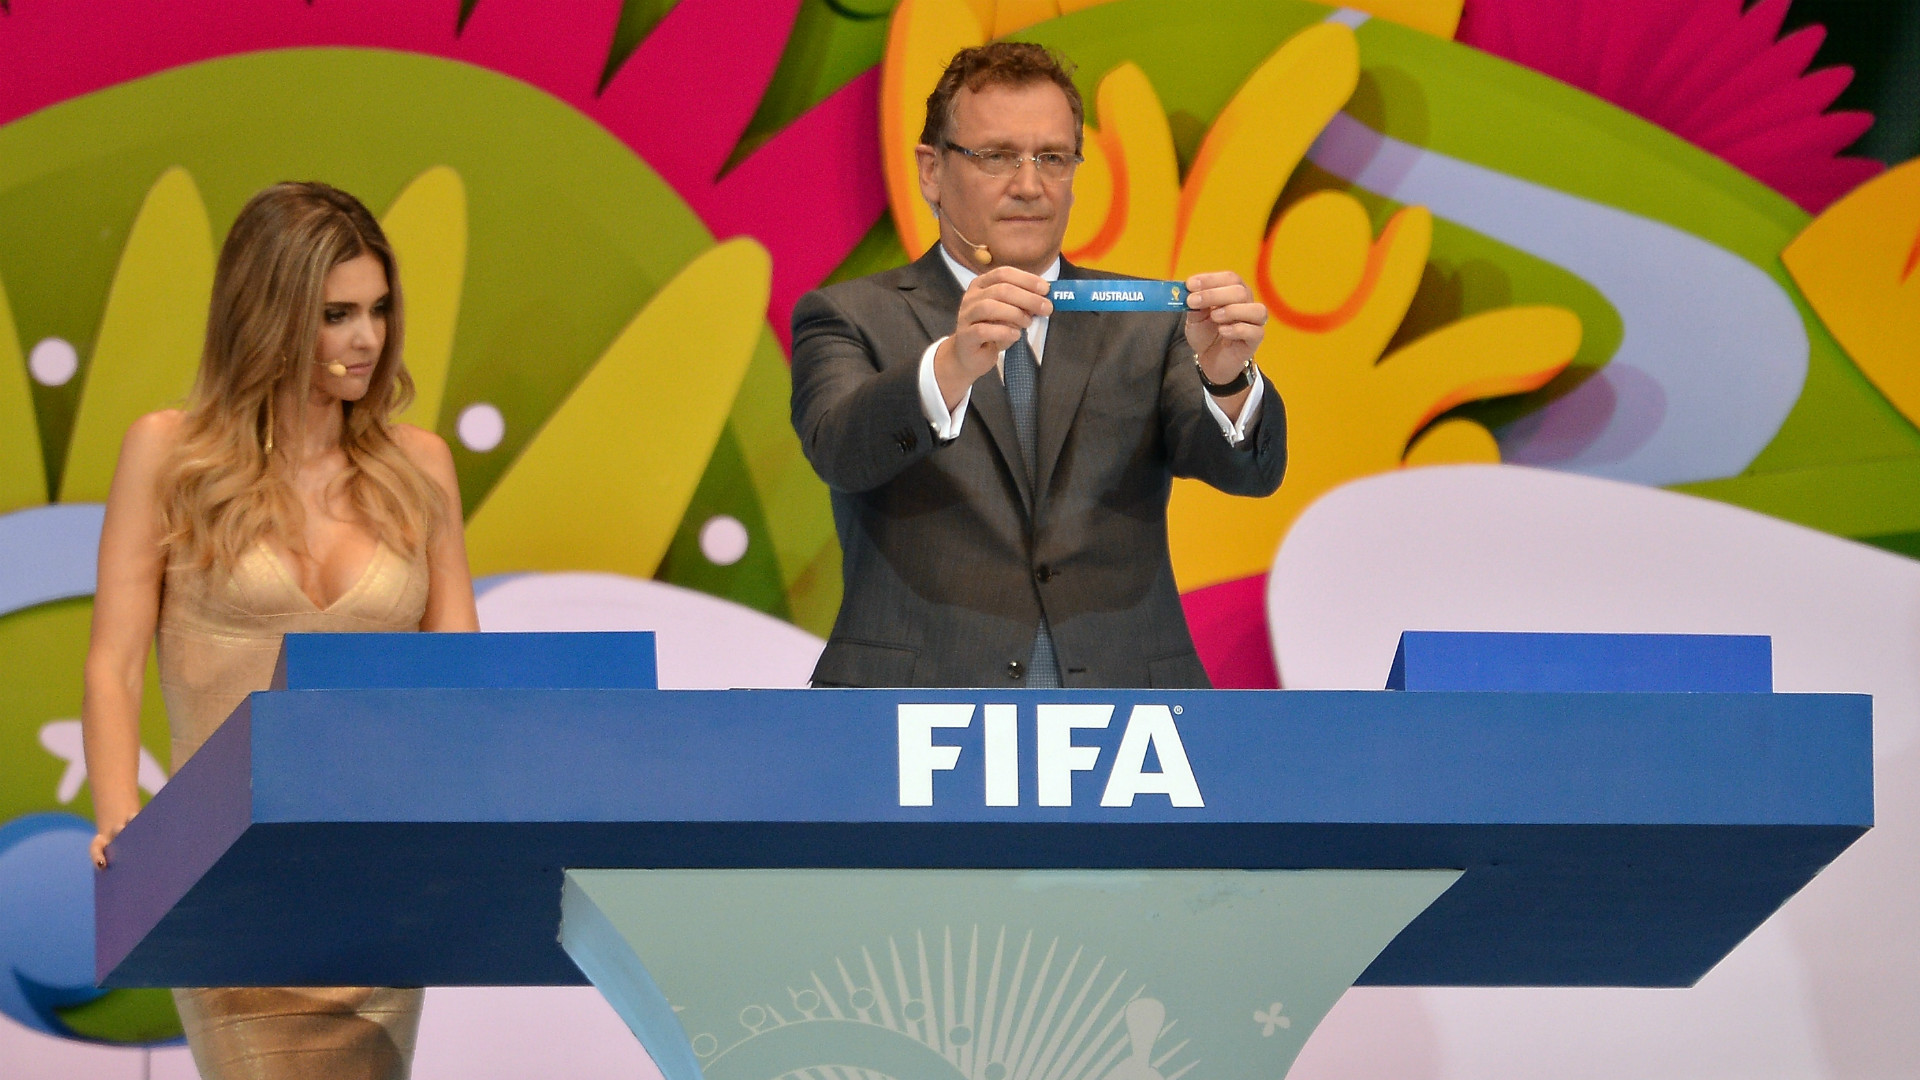 FIFA World Cup 2014 draw